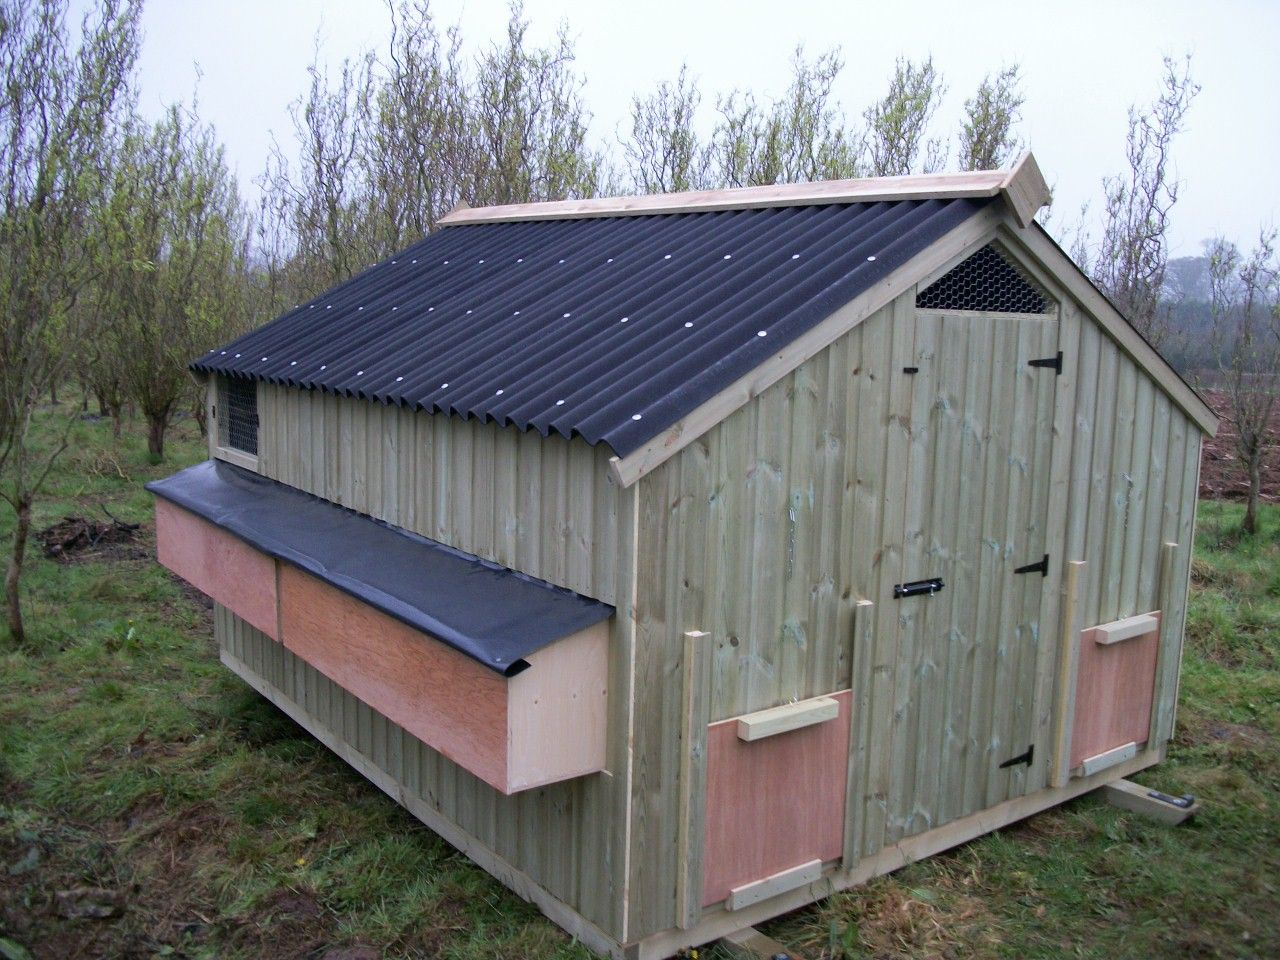 Commercial Chicken House 8ft x 6ft 'ledbury' free range poultry house (50 hens) | chicken